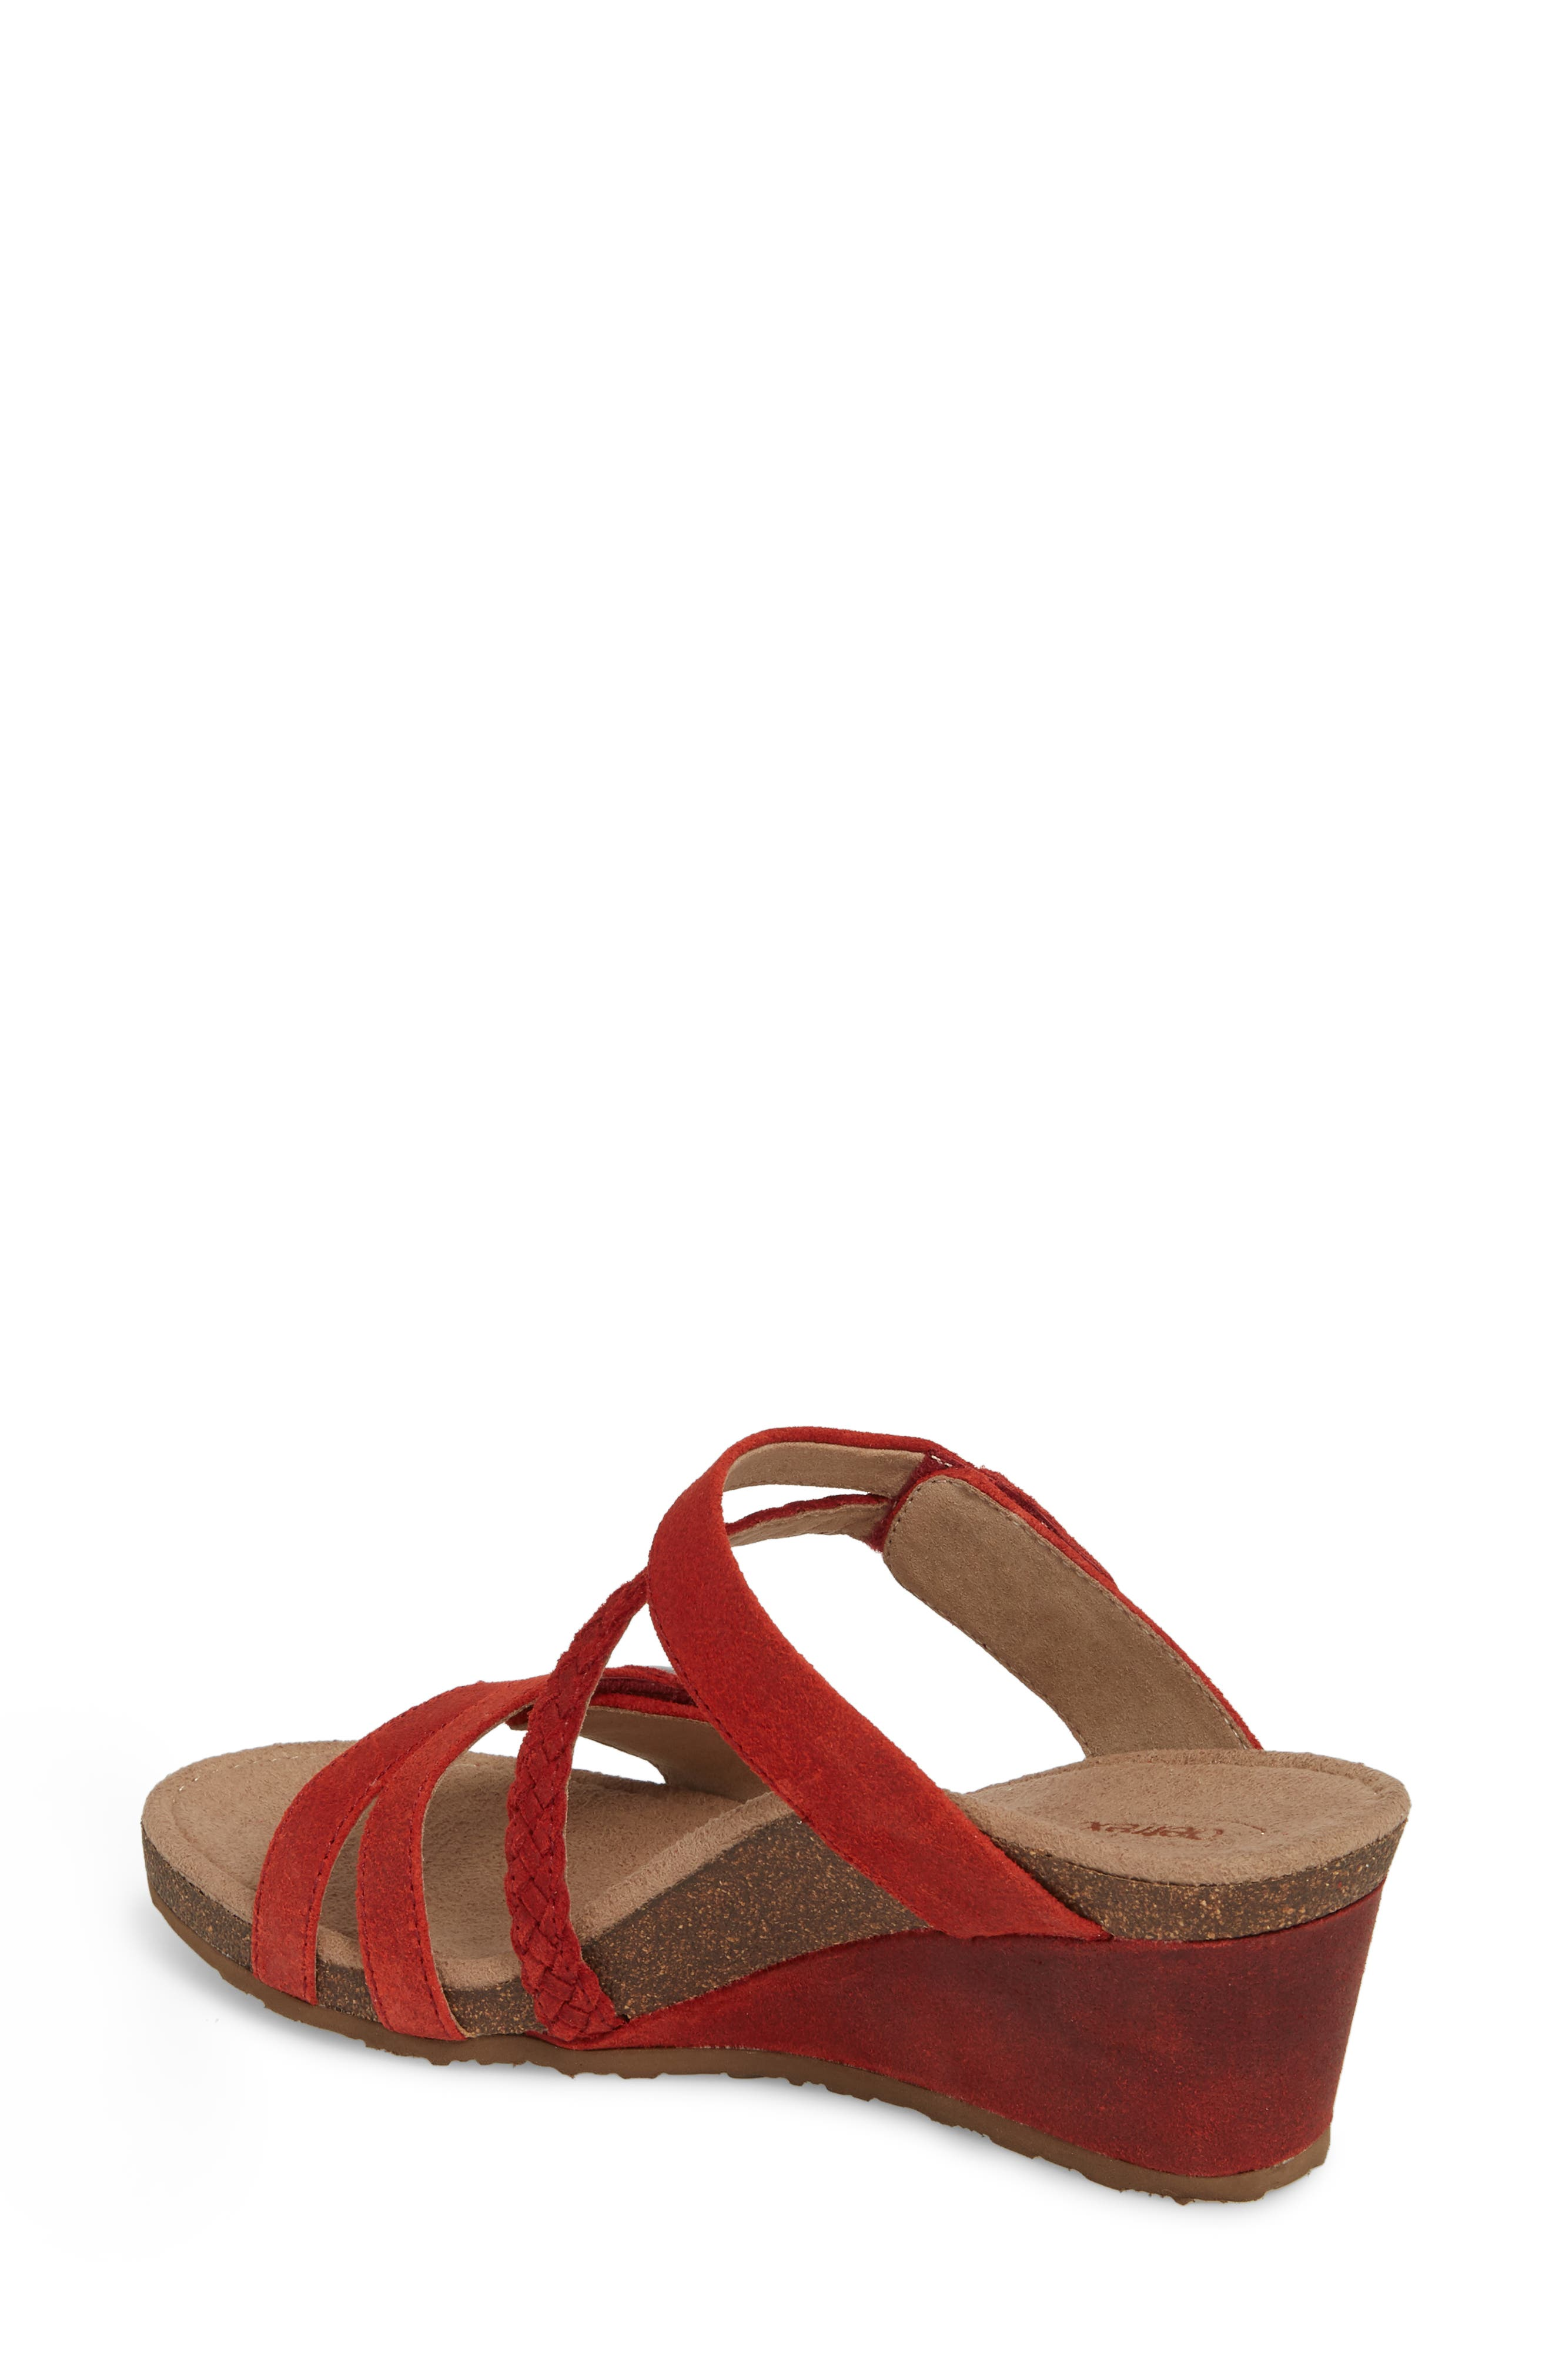 Lydia Strappy Wedge Sandal,                             Alternate thumbnail 2, color,                             Cayenne Leather